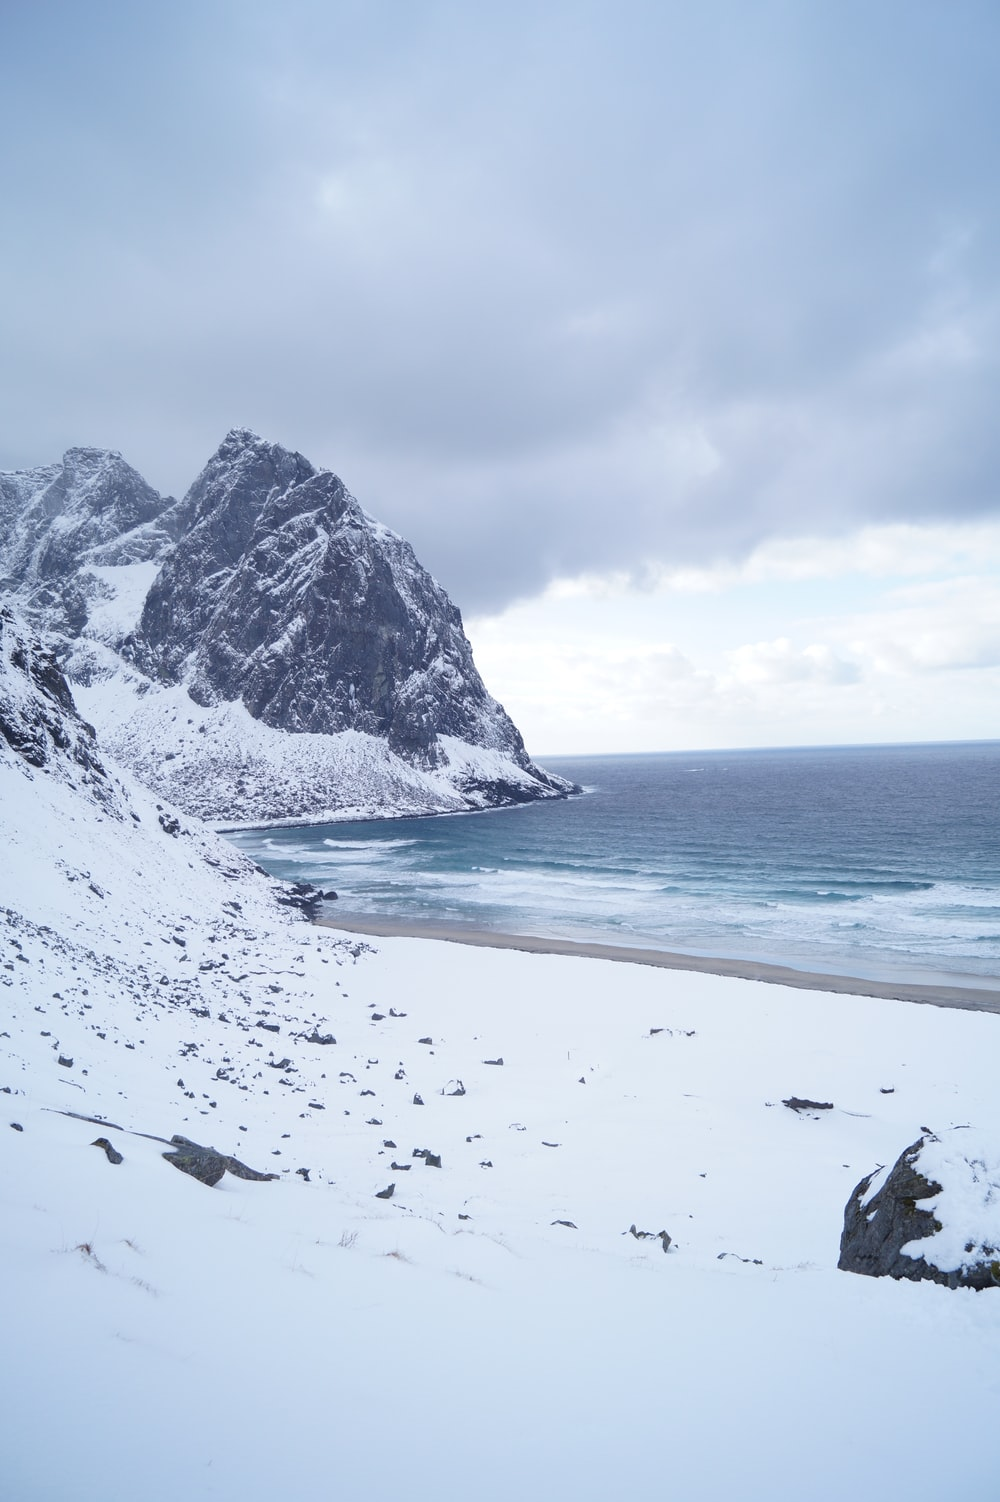 snow covered mountains on shore under gray sky